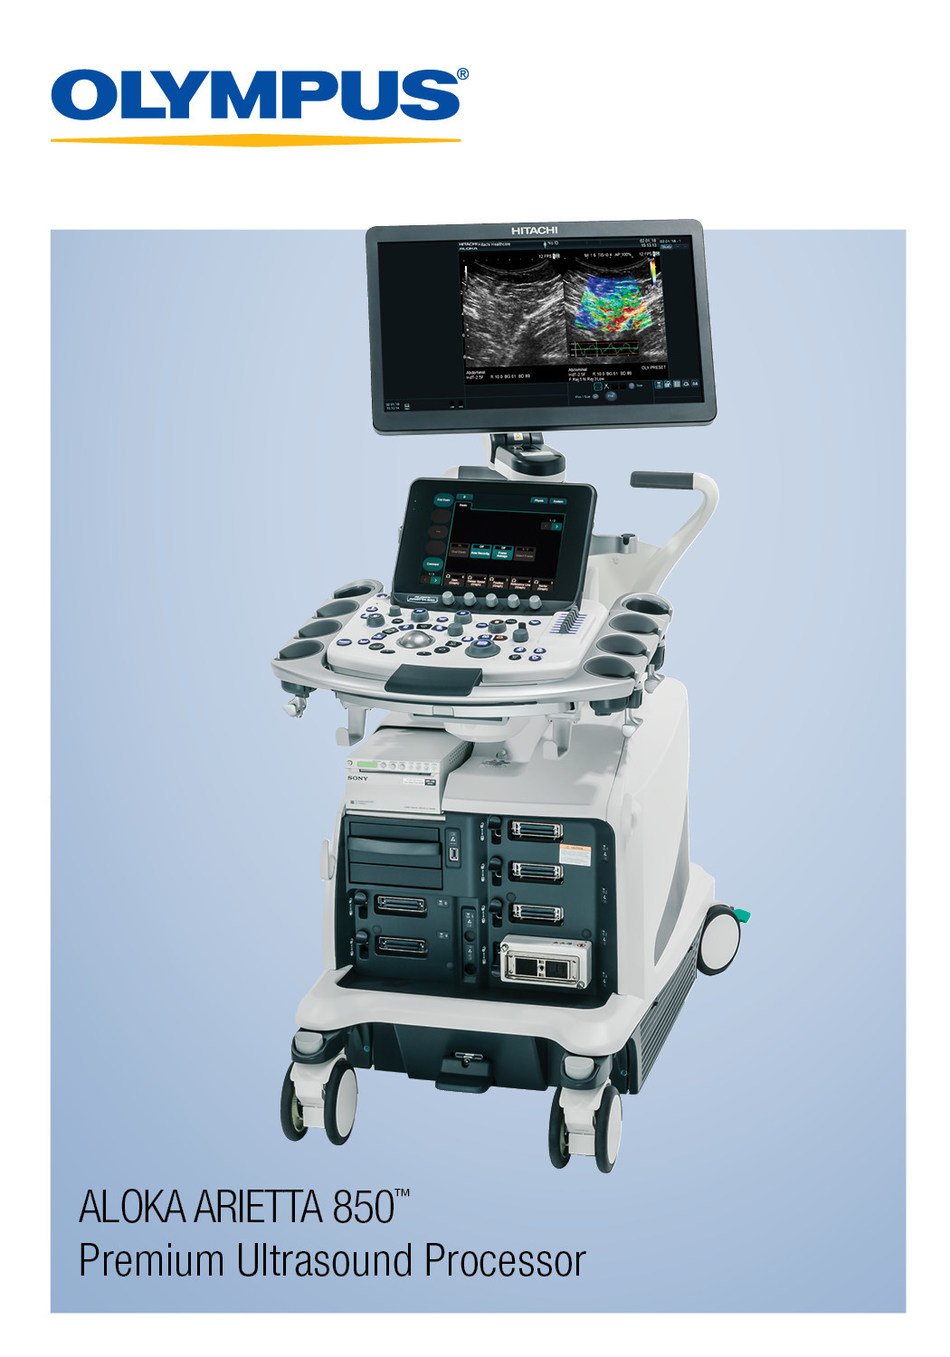 The ARIETTA 850, a premium ultrasound processor, provides endoscopists with a greater depth of information toward improved decision making, with backing by industry-leading service and support.